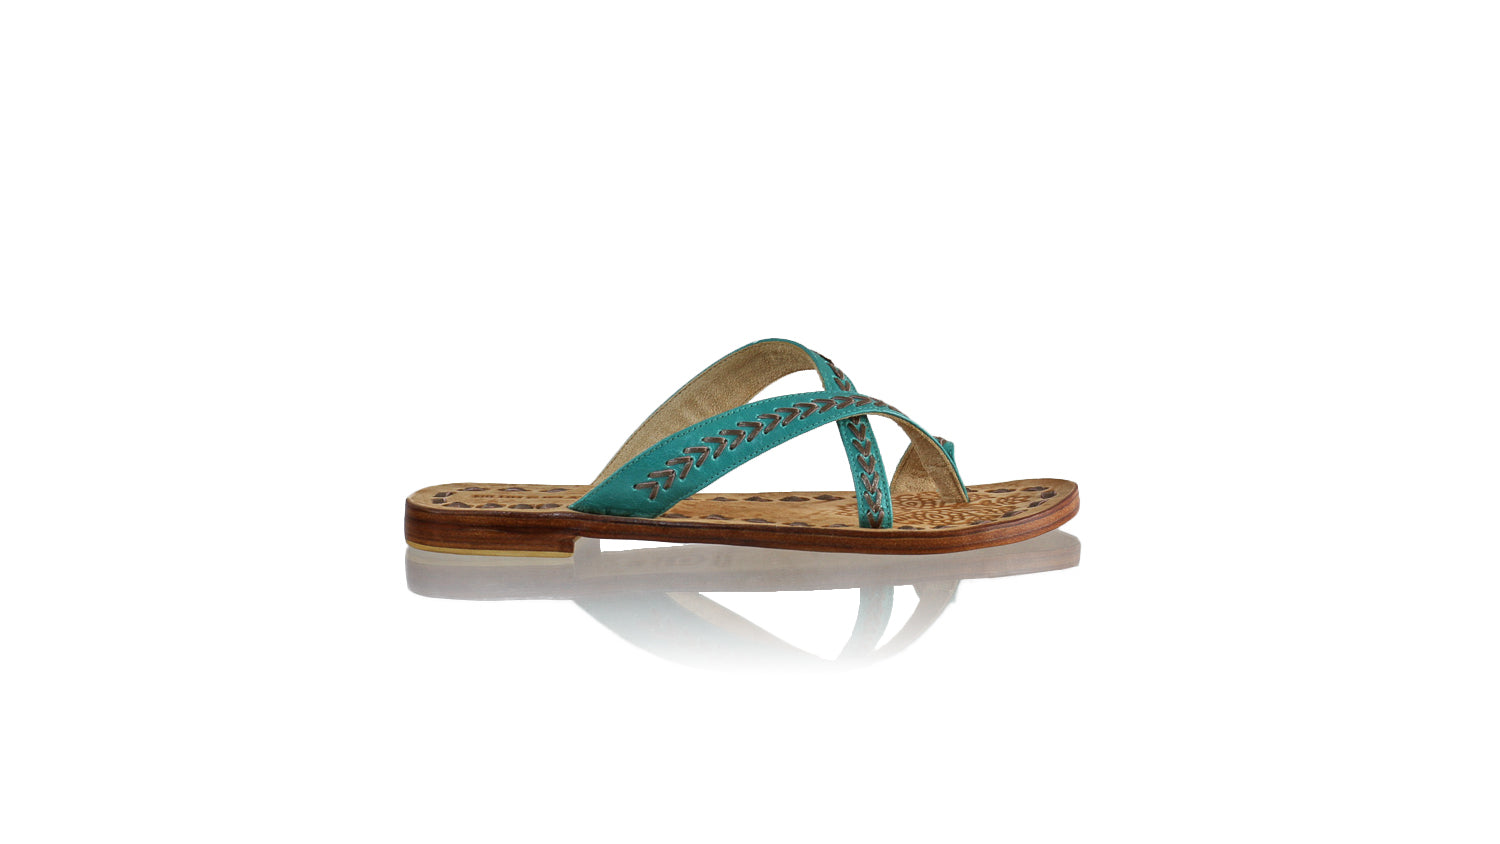 Leather-shoes-Romance Without Strap 20mm Flat - Dark Aqua & Bronze-sandals flat-NILUH DJELANTIK-NILUH DJELANTIK